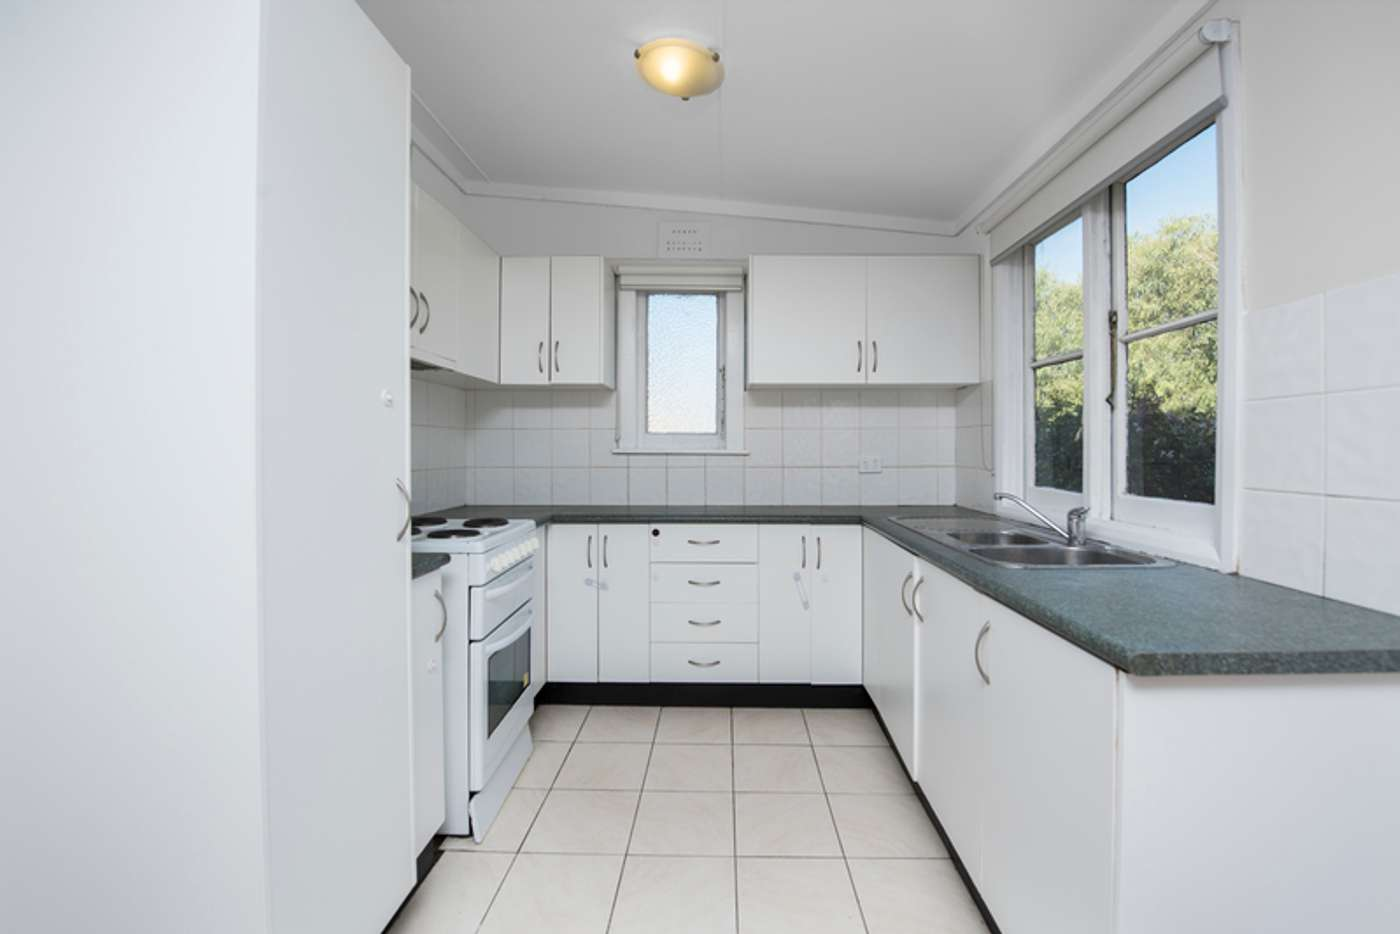 Main view of Homely house listing, 60 Elizabeth Street, Granville NSW 2142